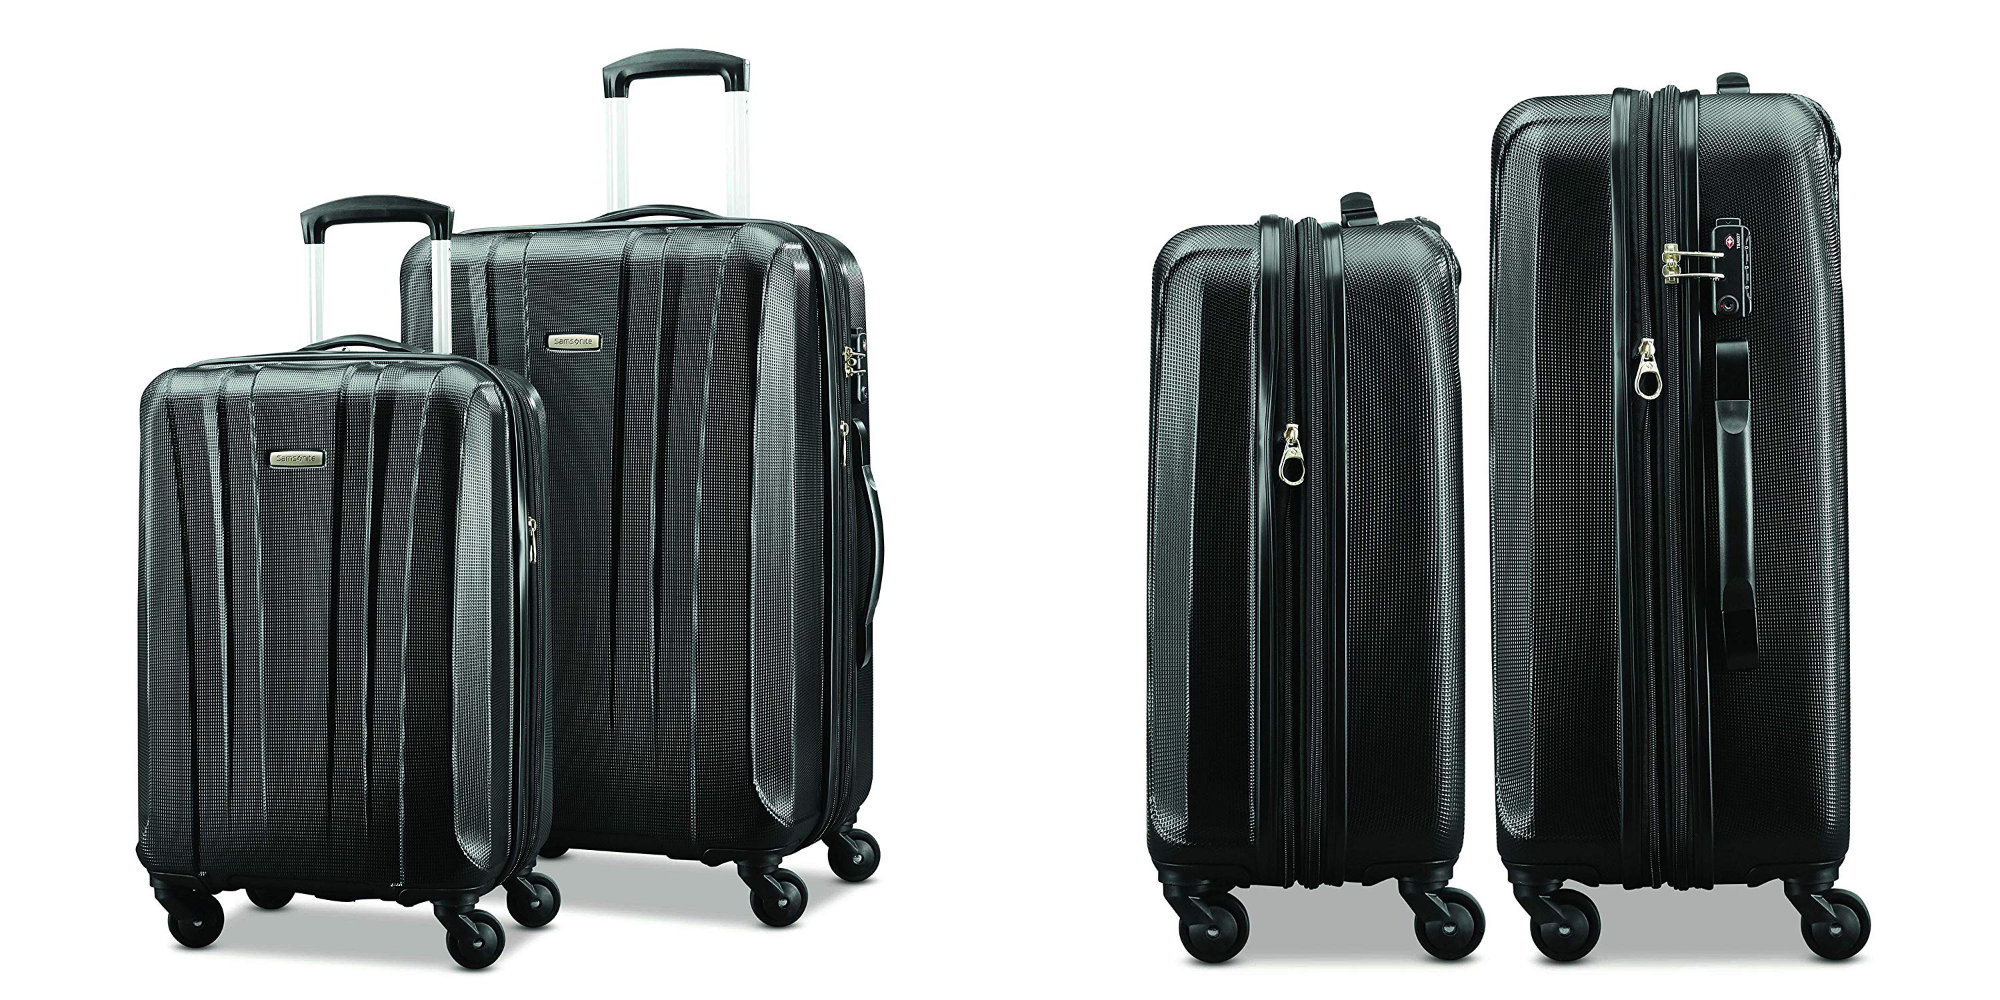 Go high-end w/ a Samsonite Pulse 2-pc. Deluxe Spinner Luggage Set: $111 at Amazon (Reg. $140)